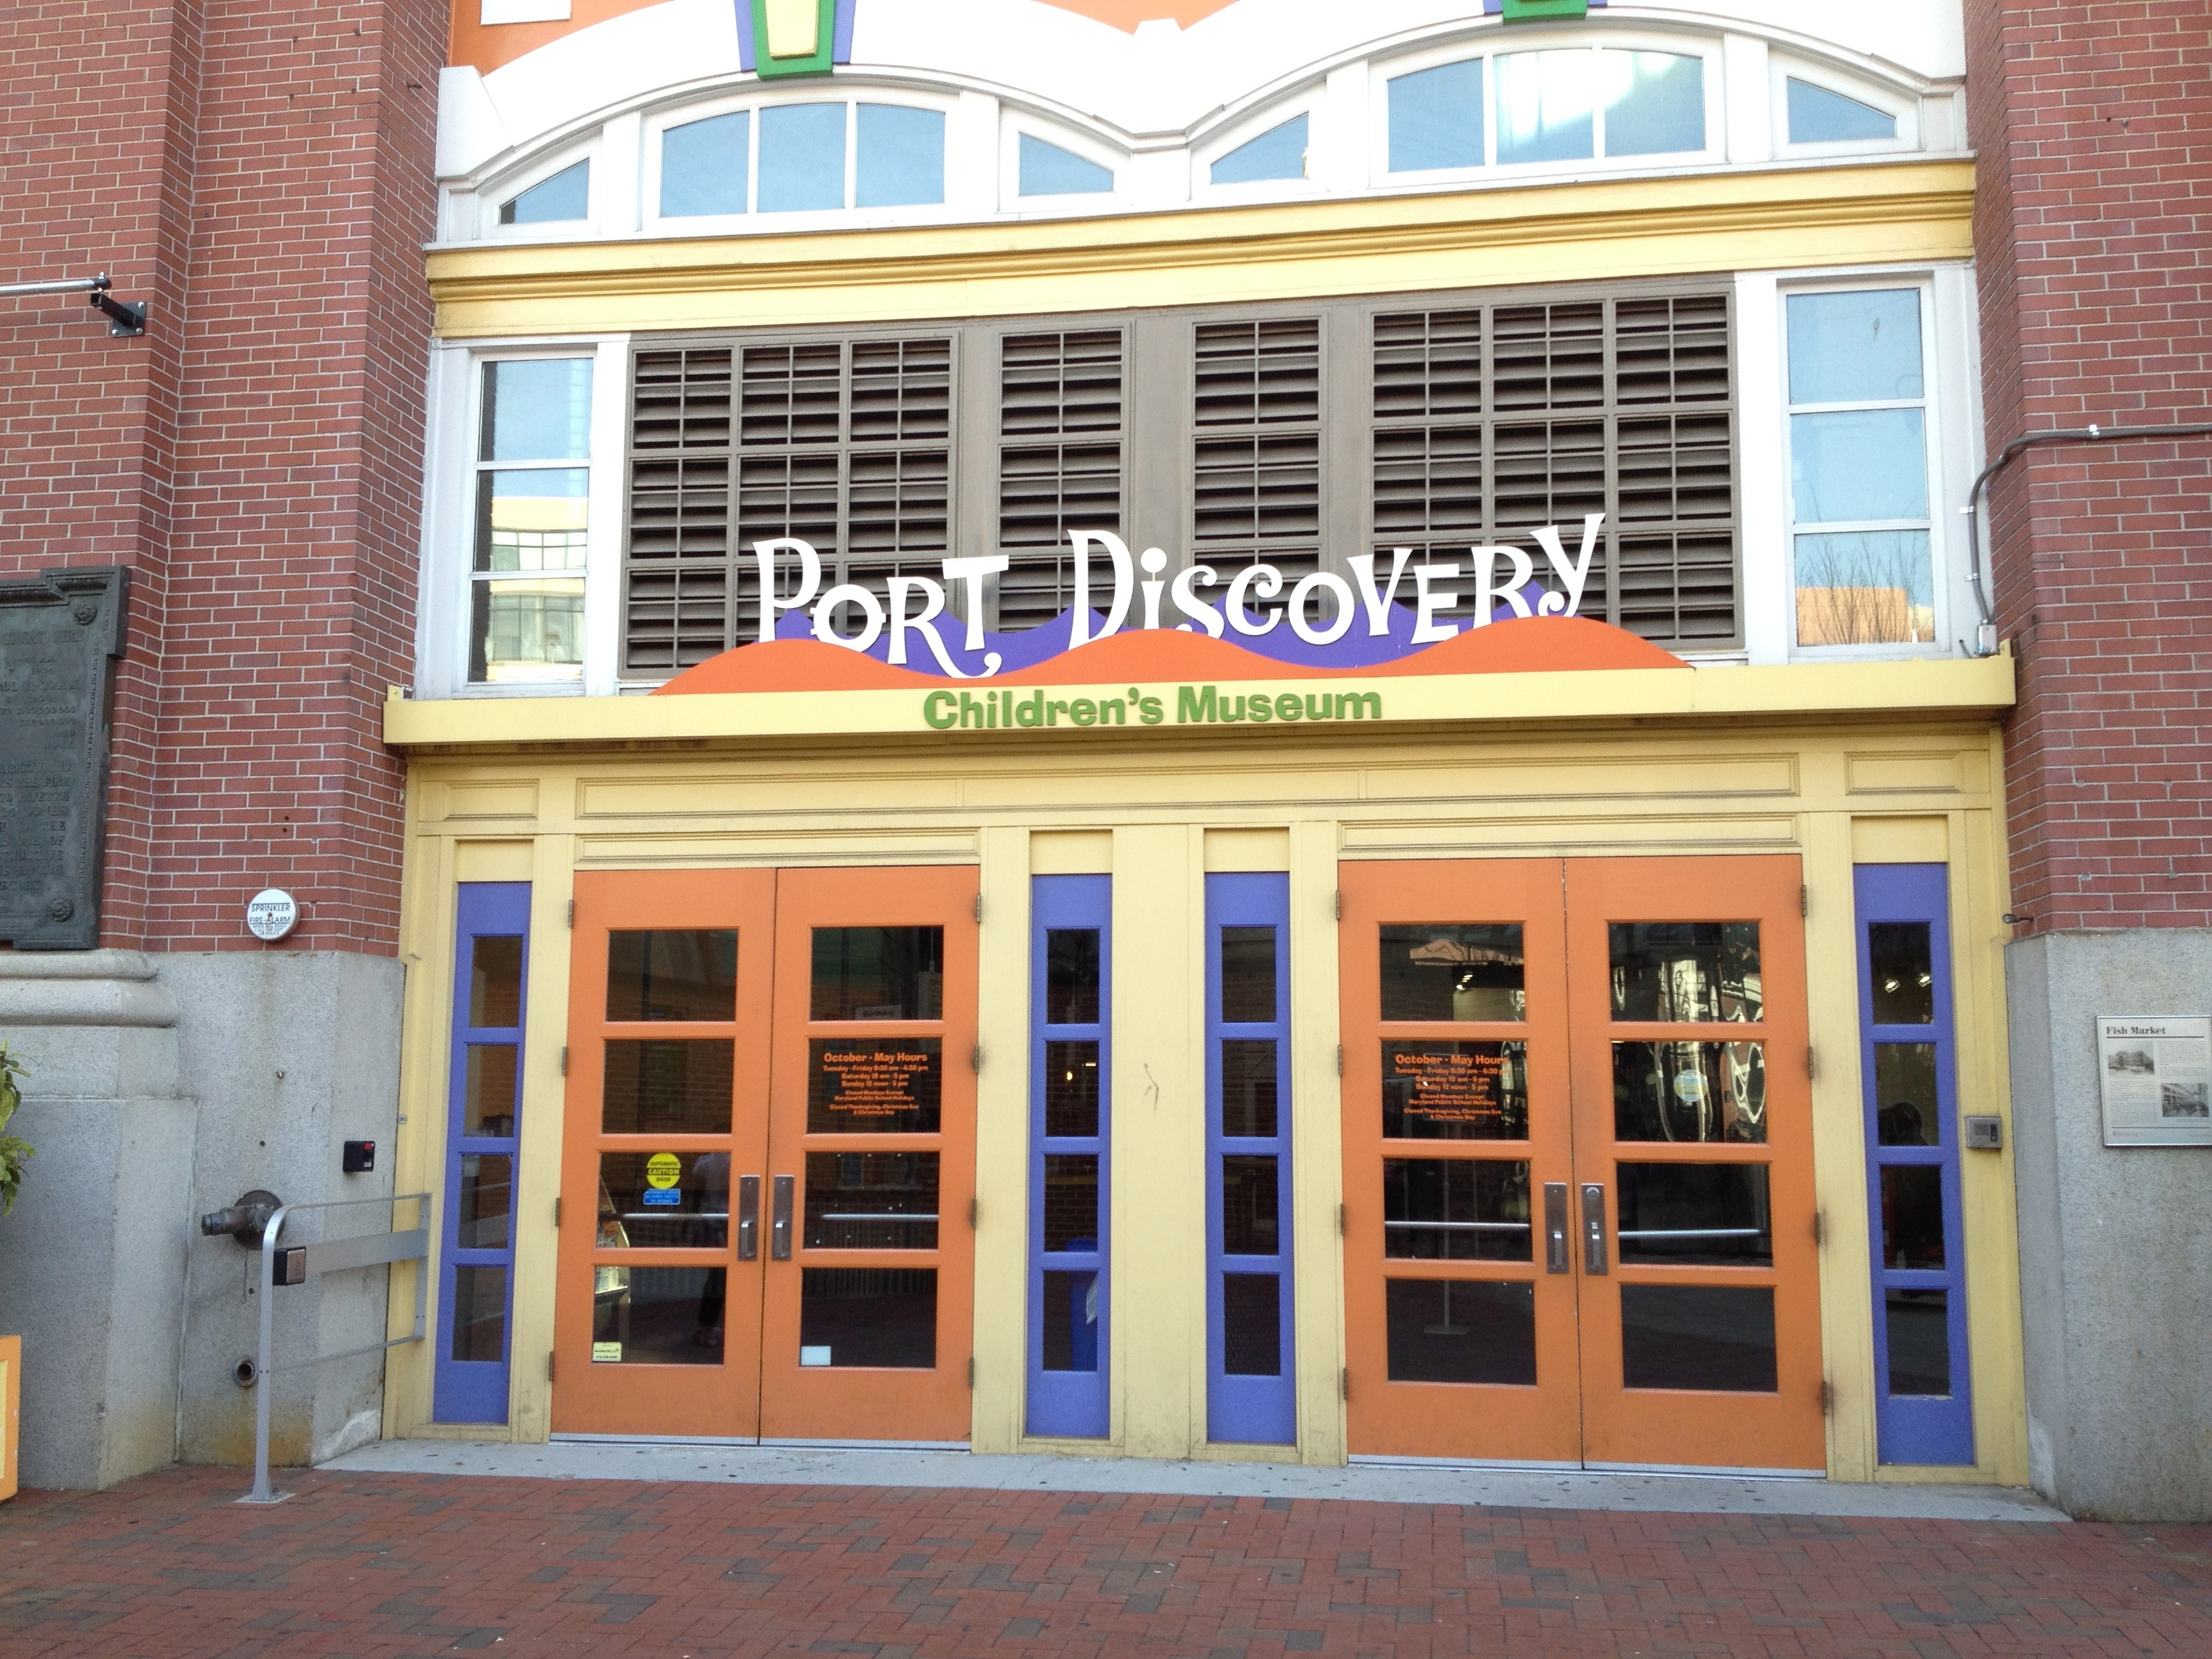 Buy Port Discovery Childrens Museum tickets online 24/7 at Ticket Down and know you are getting authentic tickets that come with a customer satisfaction guarantee. If you want to know where to buy the cheapest Port Discovery Childrens Museum tickets online, you're at the right site! Discount Offer.